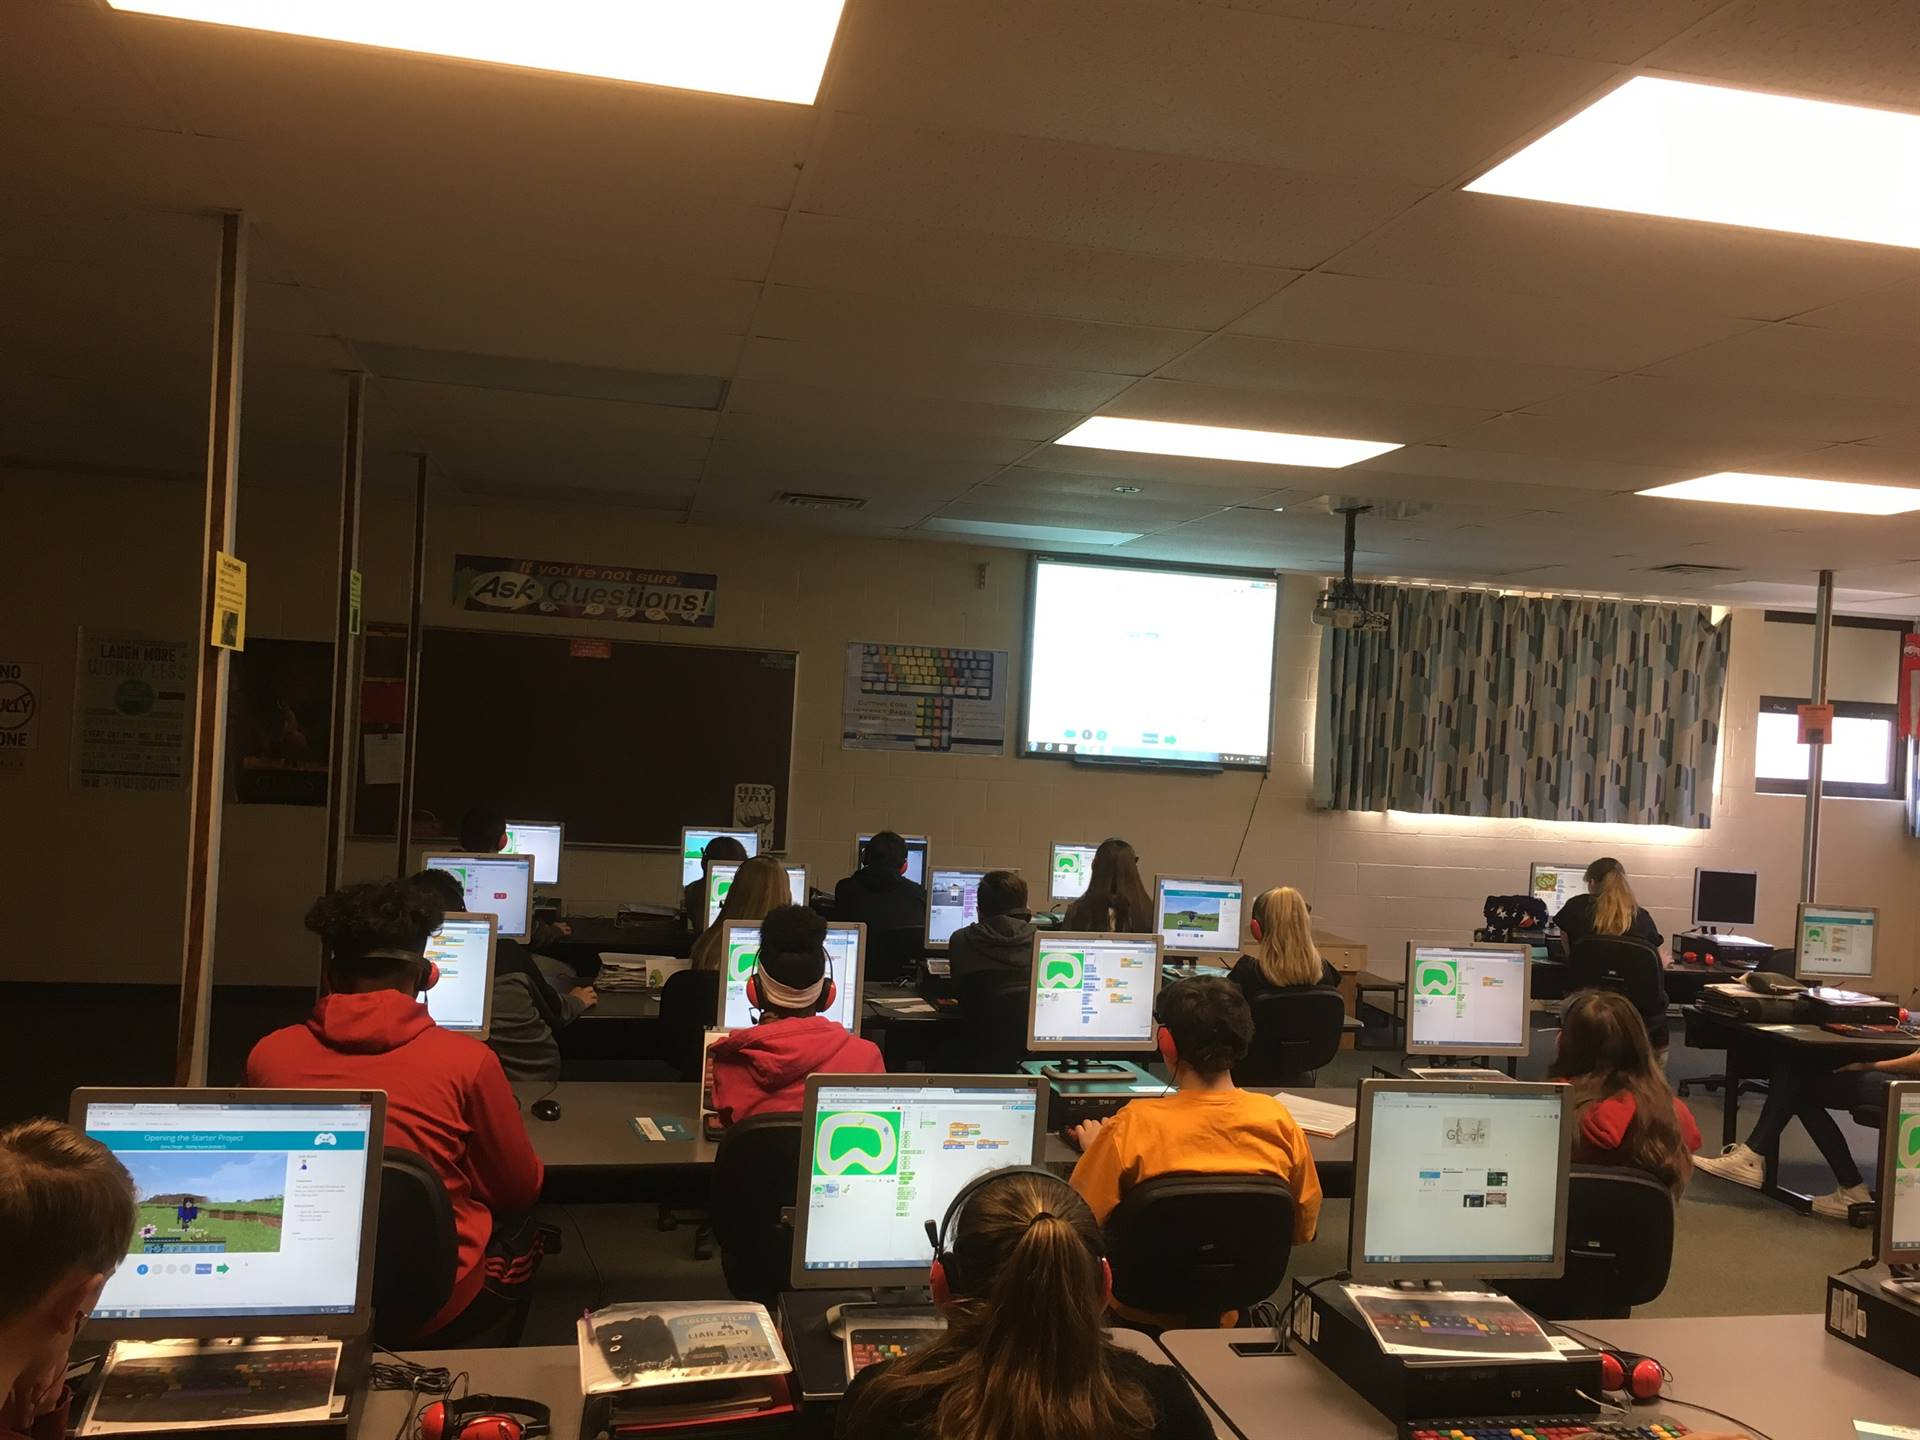 Students are using Scratch to code during Computer Science Education Week in Mr. Frase's classes.